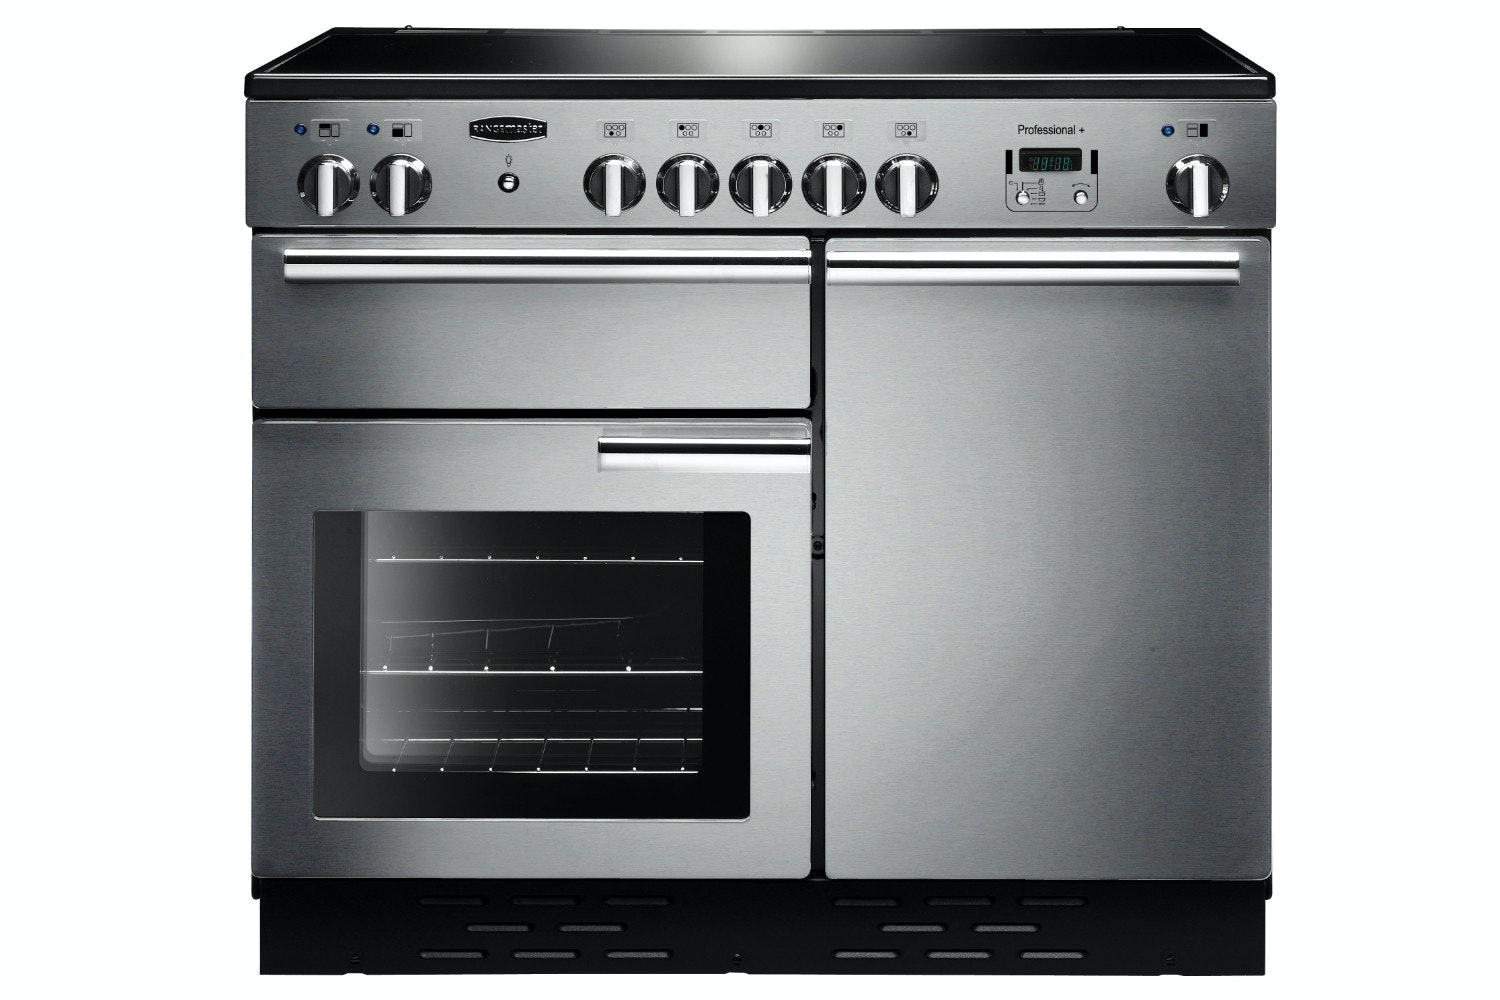 Rangemaster 100cm Induction Range Cooker | PROP100EISS/C | Stainless Steel